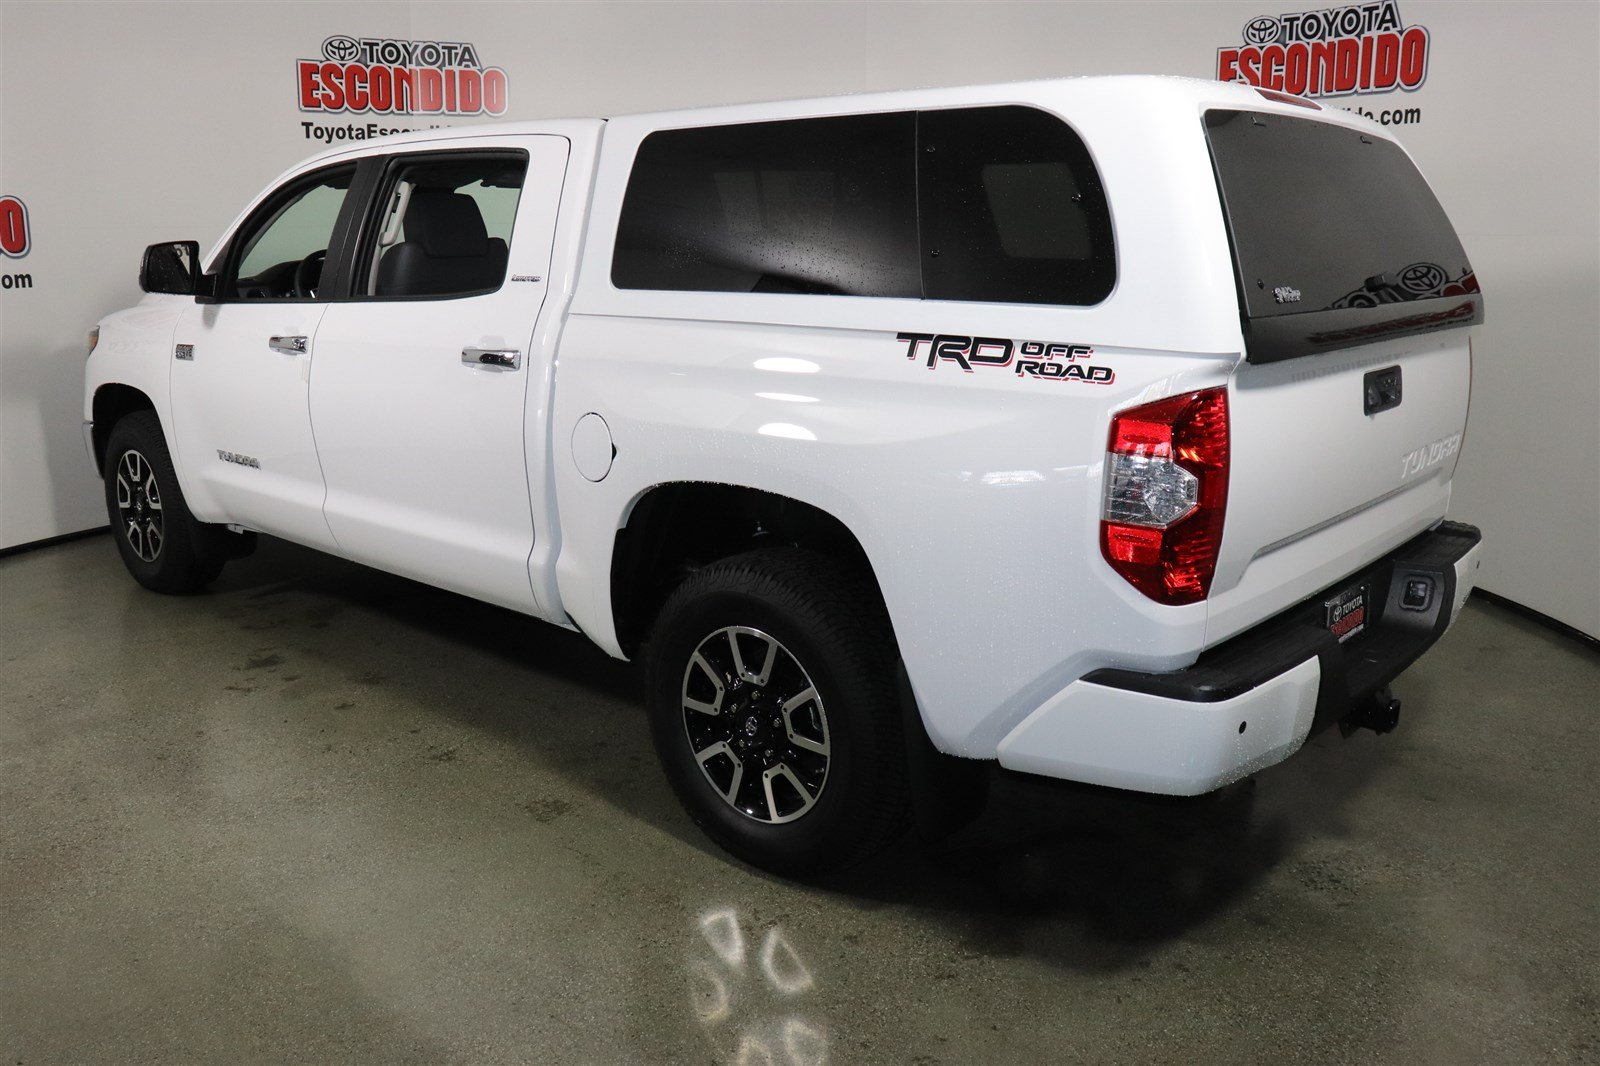 New 2019 Toyota Tundra Limited 2wd Crewmax Pickup In Escondido